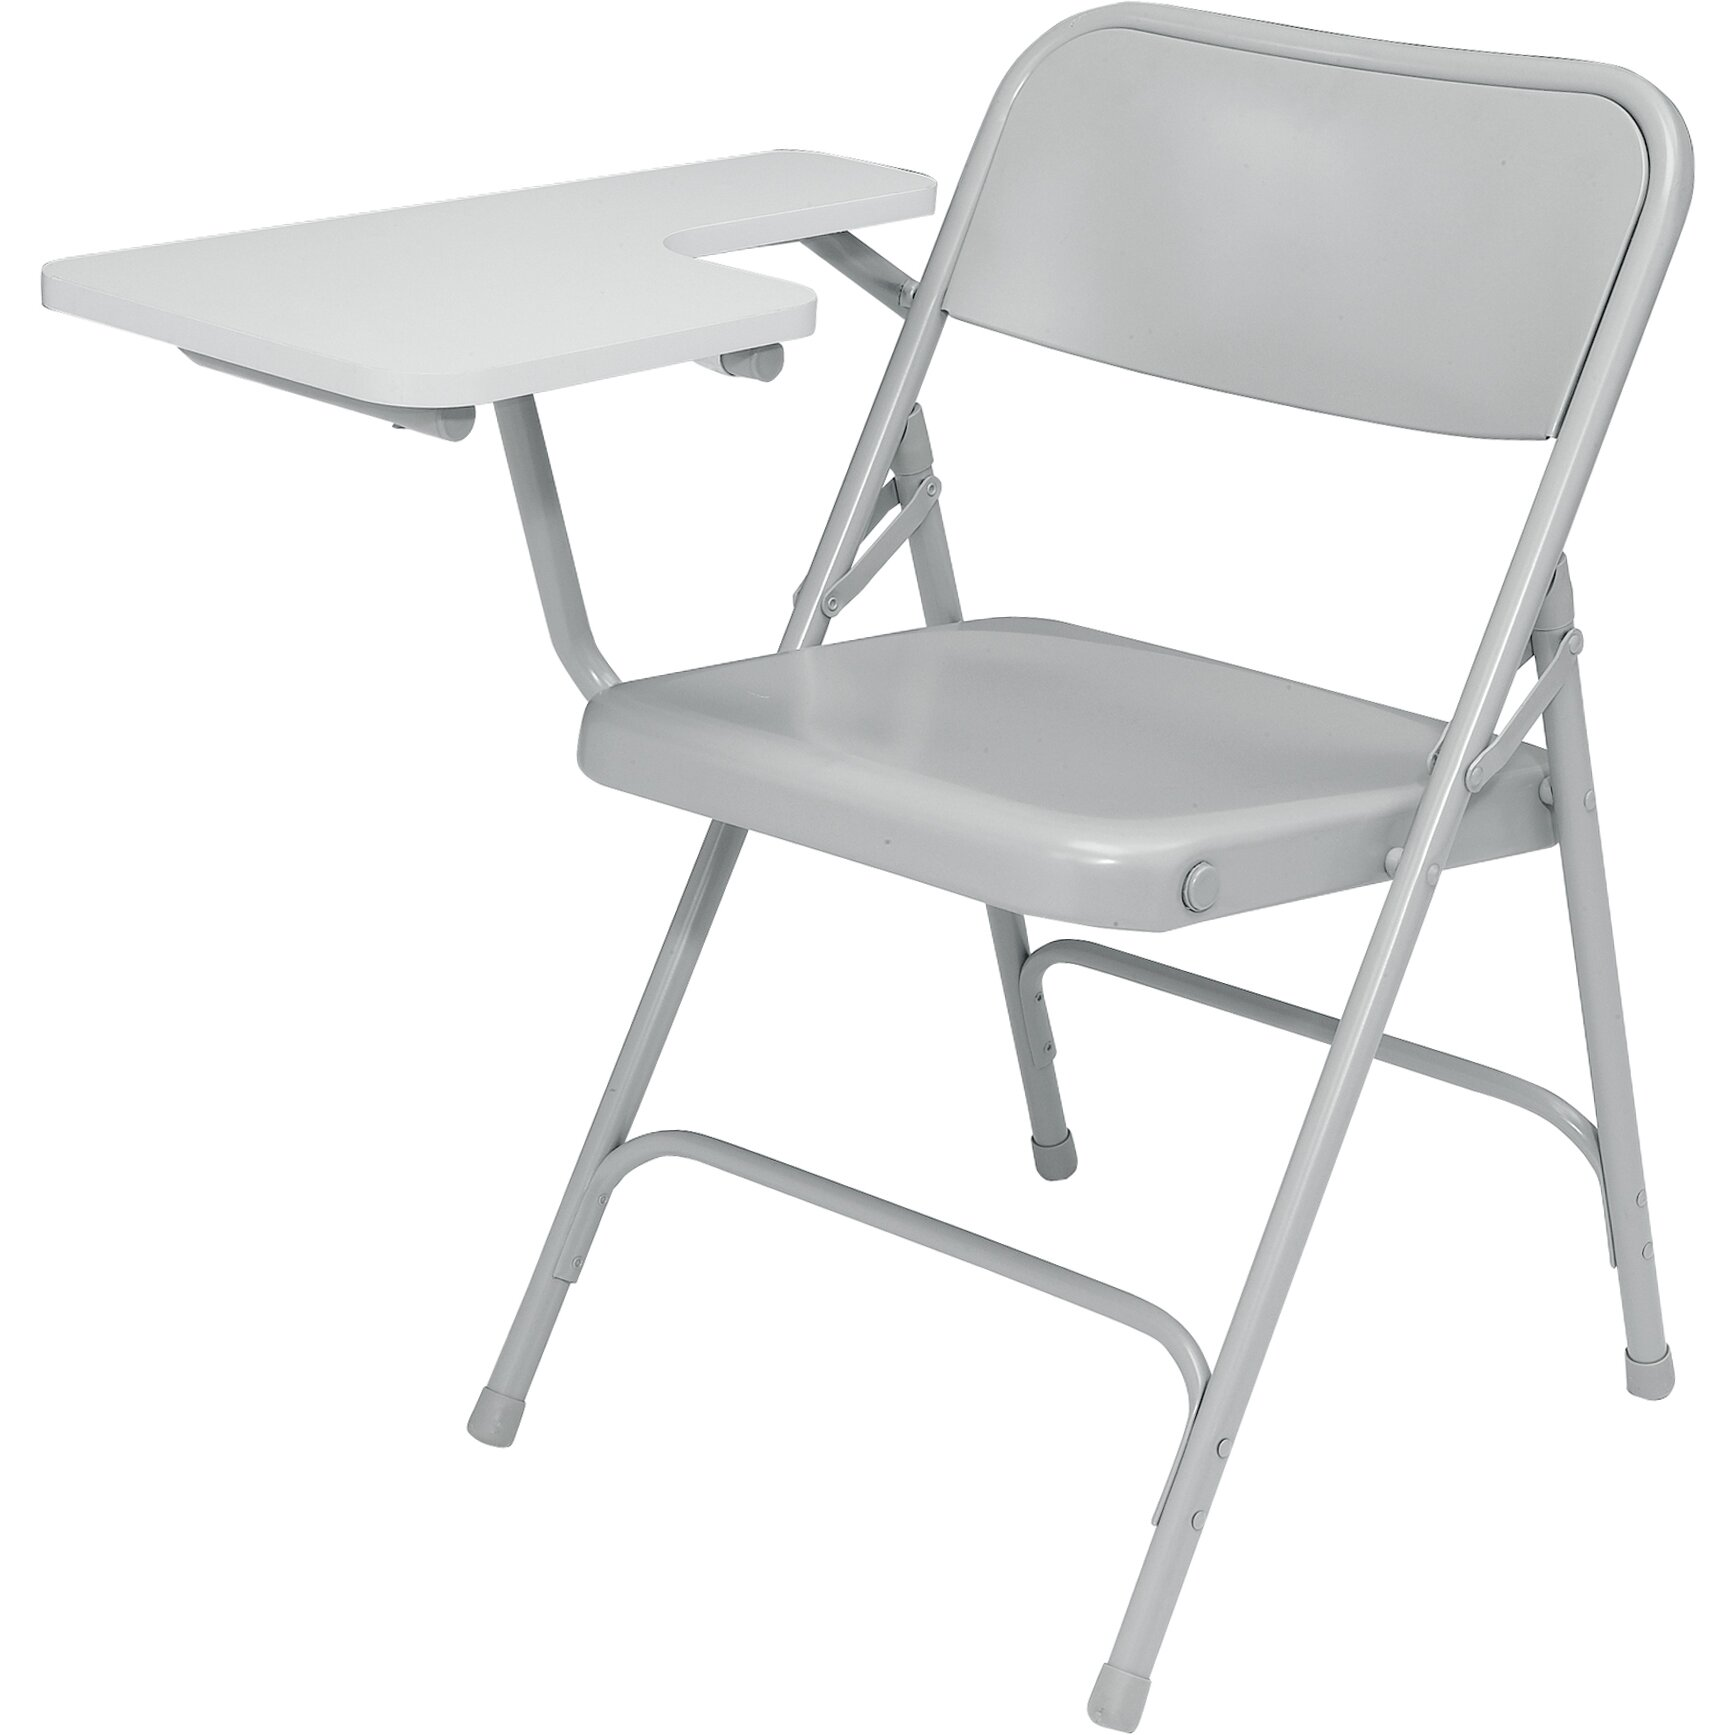 National Public Seating 5200 Series Steel Folding Chair with Tablet Arm &